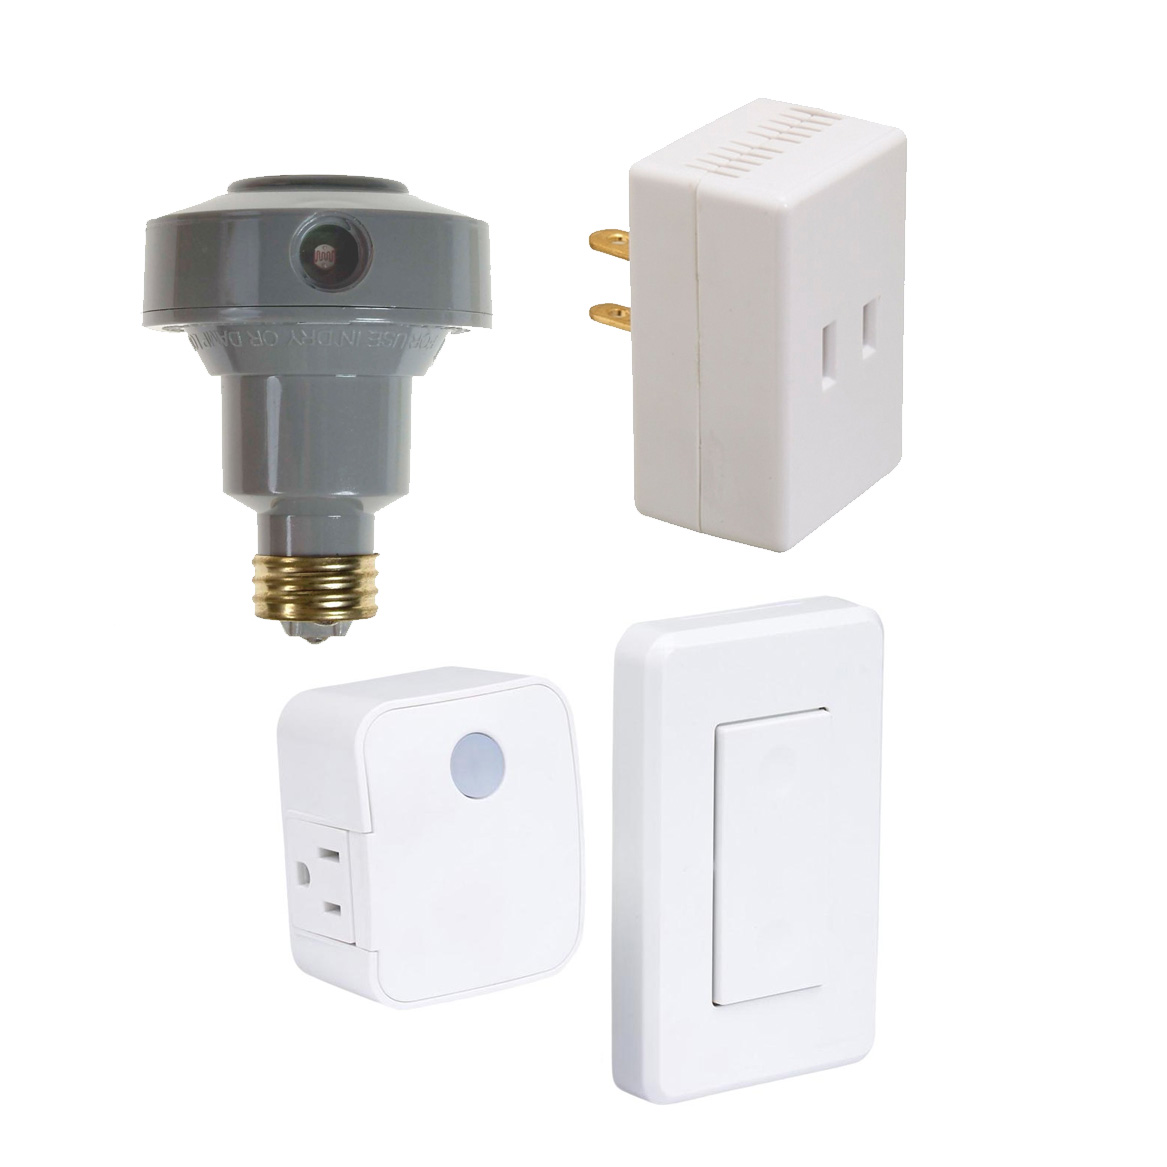 Dimmers, Motion Control, Dusk to Dawn Sensors